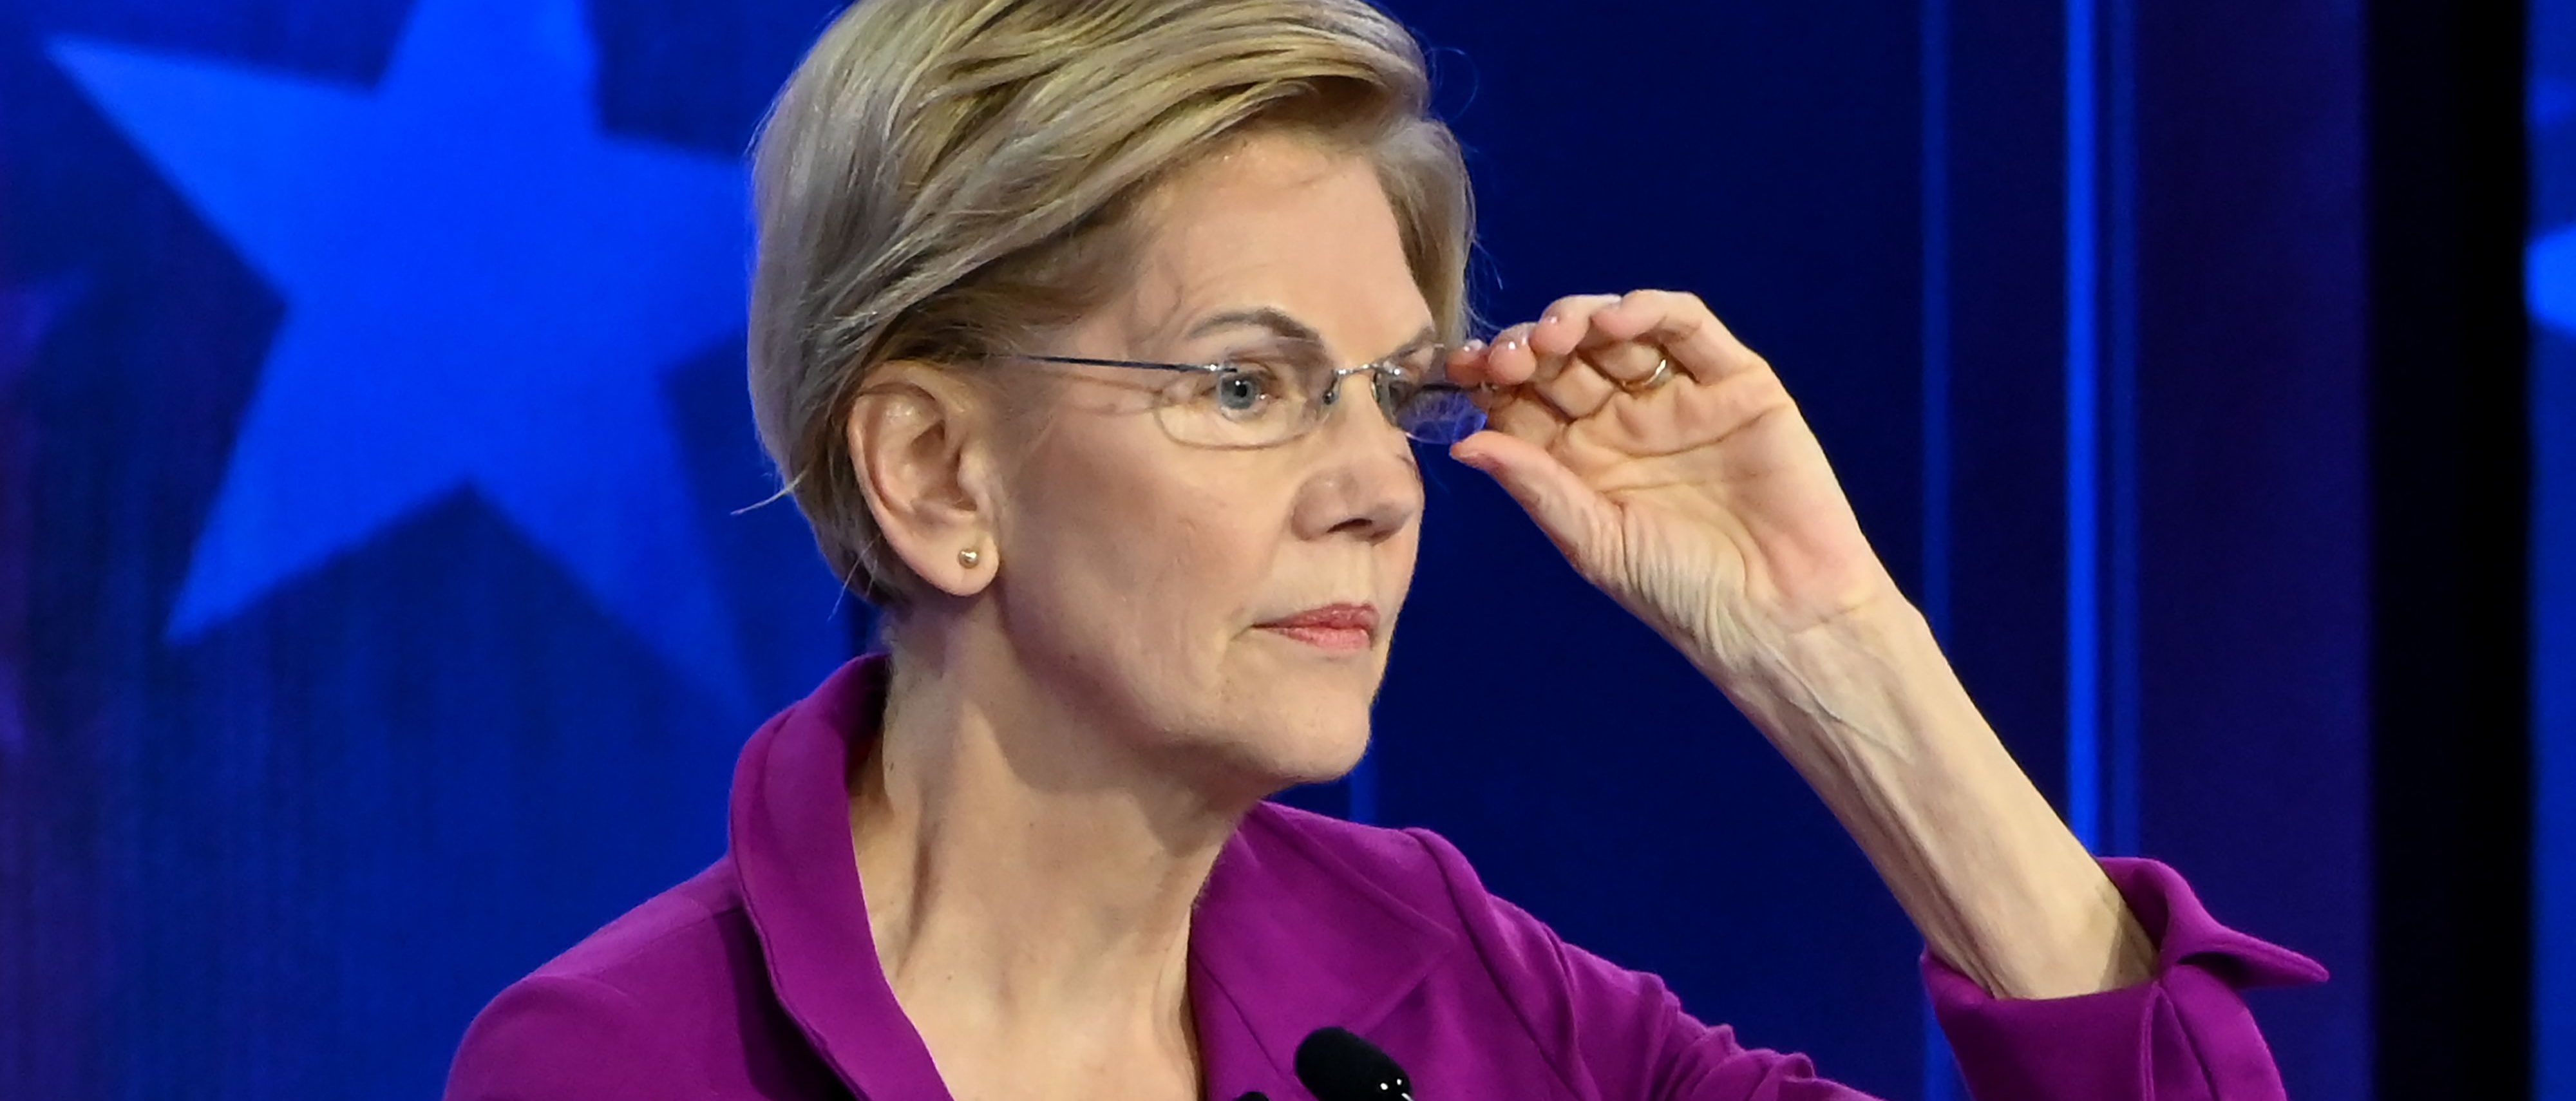 Democratic presidential hopeful Massachusetts Senator Elizabeth Warren participates in the fifth Democratic primary debate of the 2020 presidential campaign season co-hosted by MSNBC and The Washington Post at Tyler Perry Studios in Atlanta, Georgia on November 20, 2019. (Photo by SAUL LOEB / AFP) (Photo by SAUL LOEB/AFP via Getty Images)